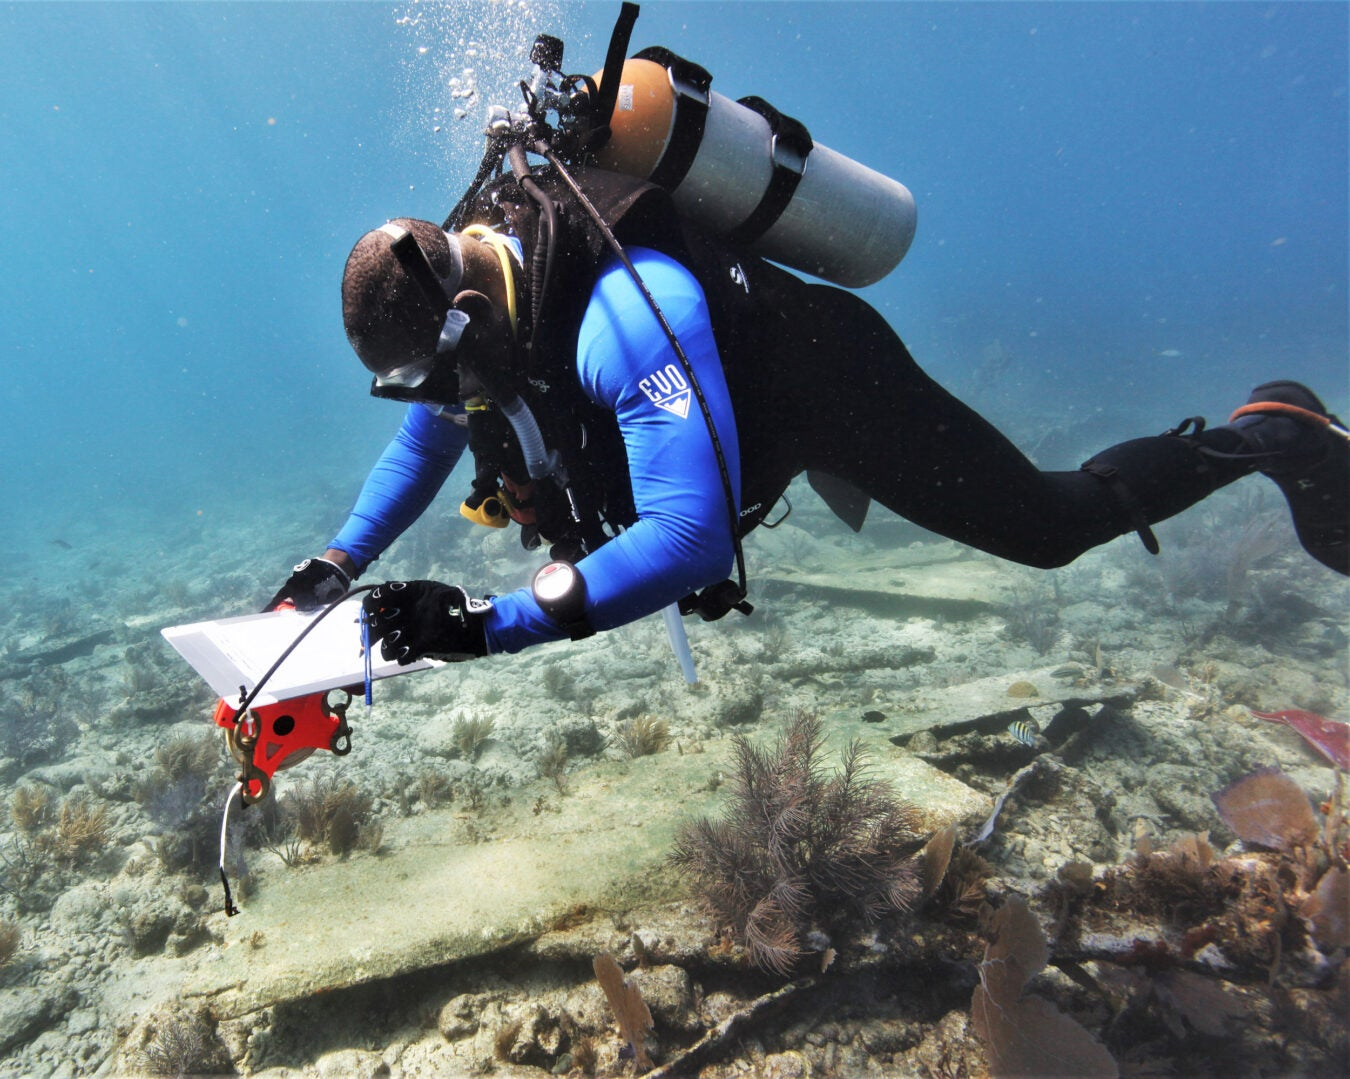 Diving with a Purpose salvages Black history